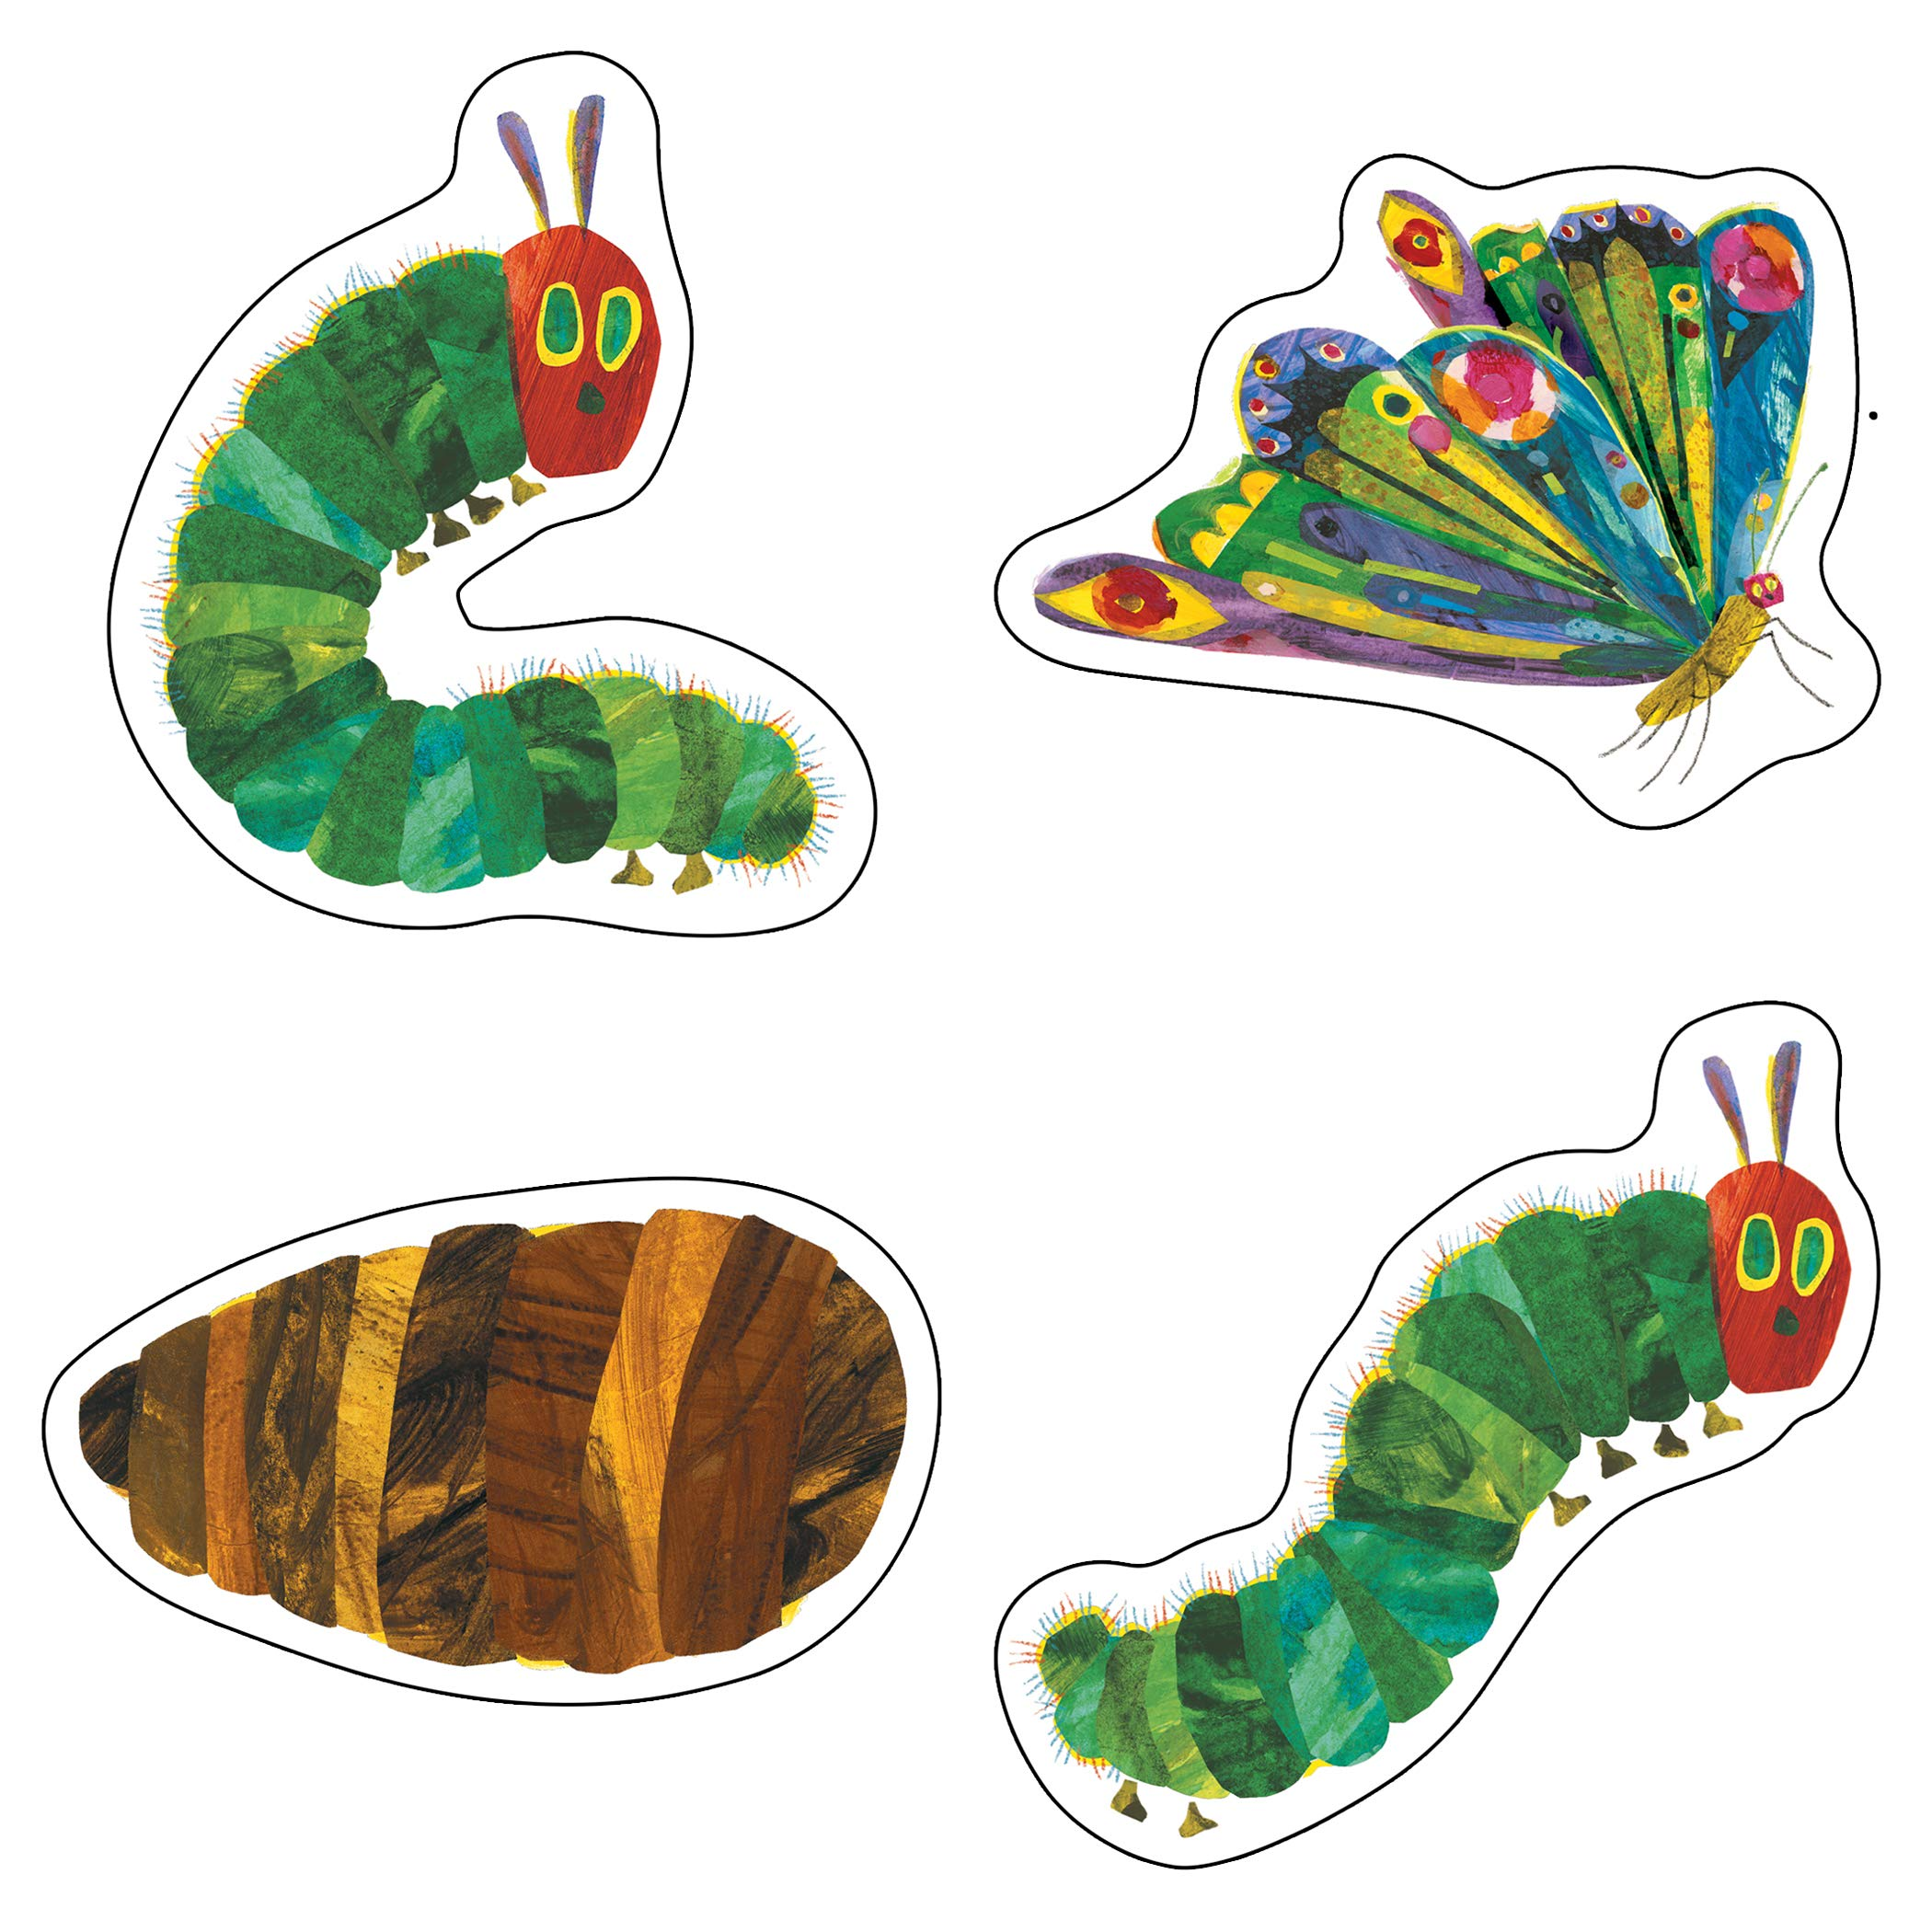 The Very Hungry Caterpillar Tm 45th Anniversary Cut Outs The World Of Eric Carle Amazon Co Uk Carson Dellosa Publishing 0044222233266 Books